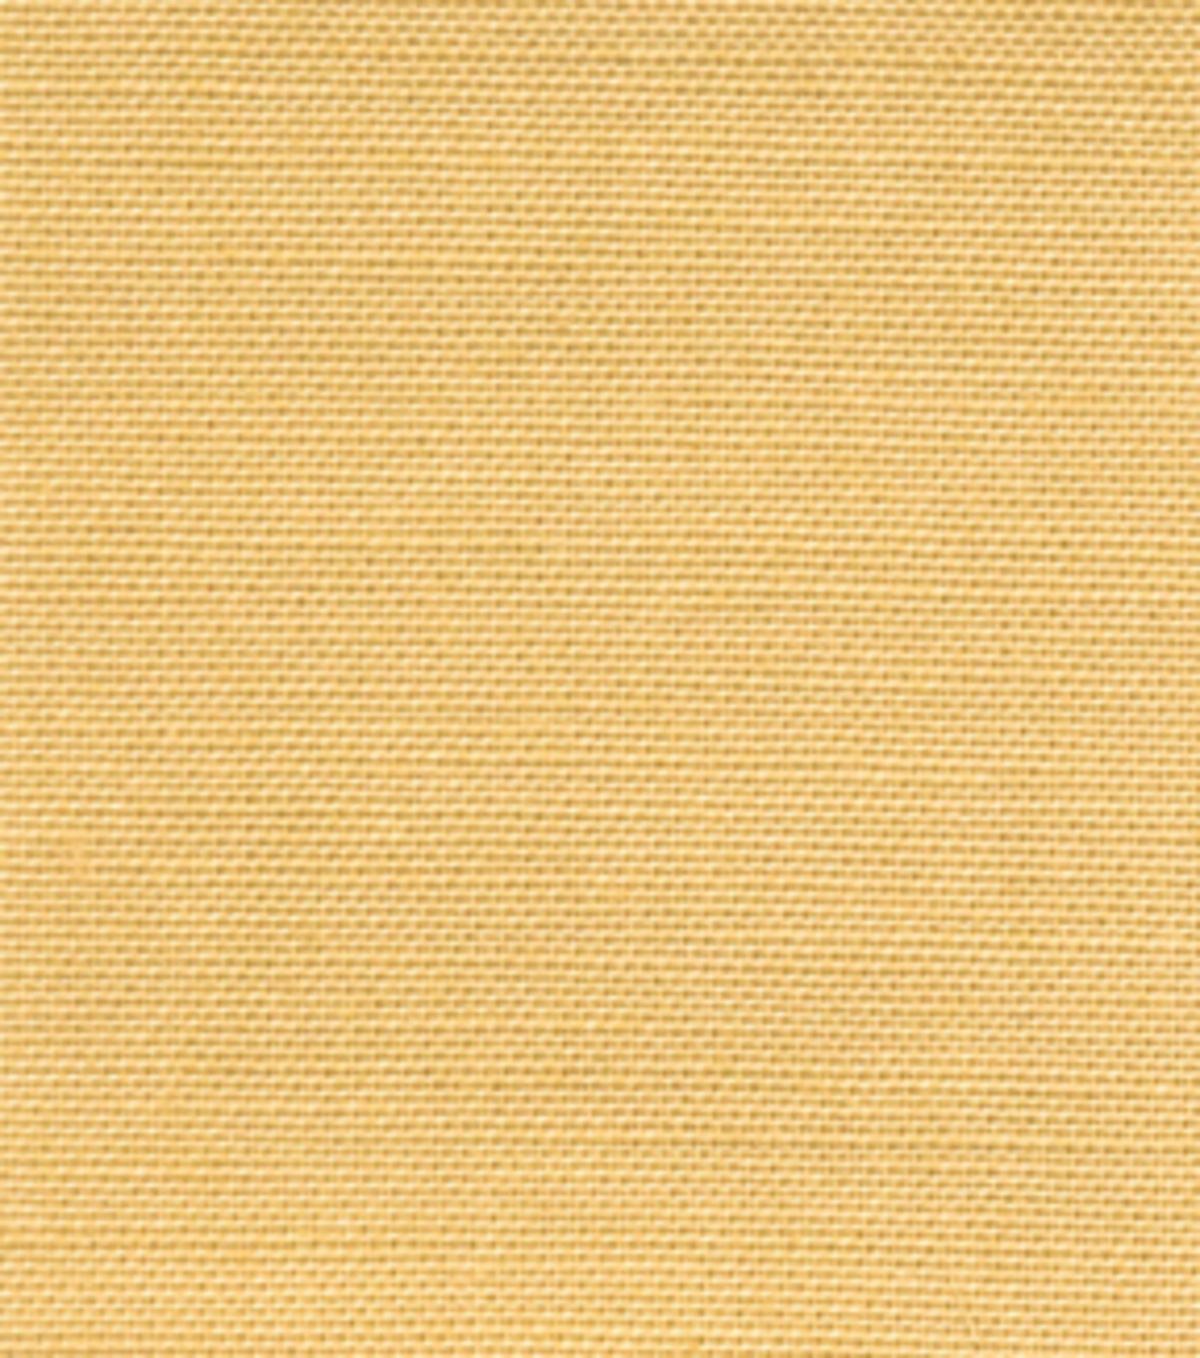 Home Decor 8\u0022x8\u0022 Fabric Swatch-Signature Series Sonoma Linen-Cotton Barley